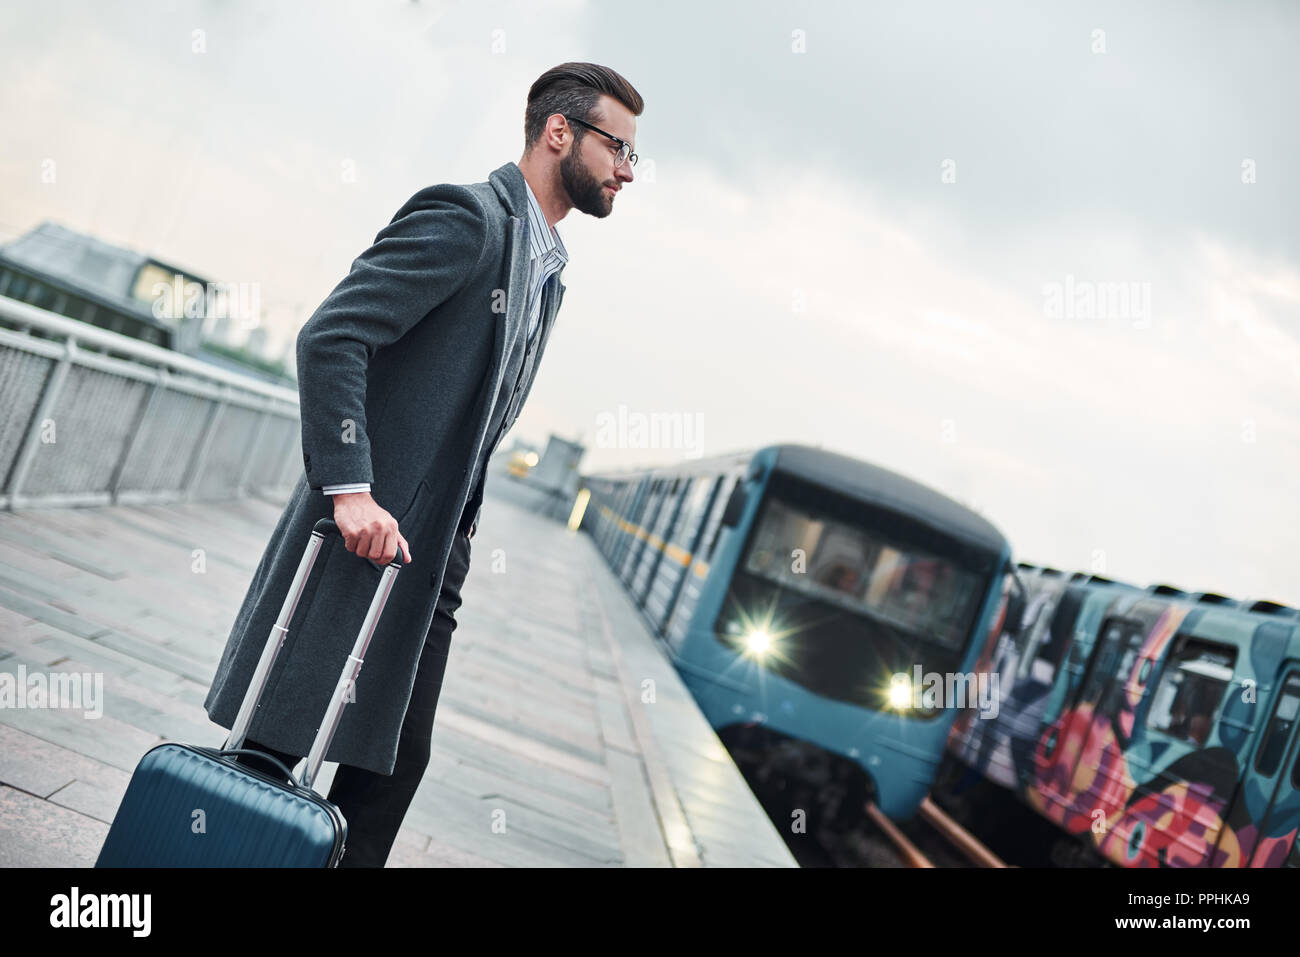 Business trip. Young businessman standing near railway with luggage waiting for train - Stock Image